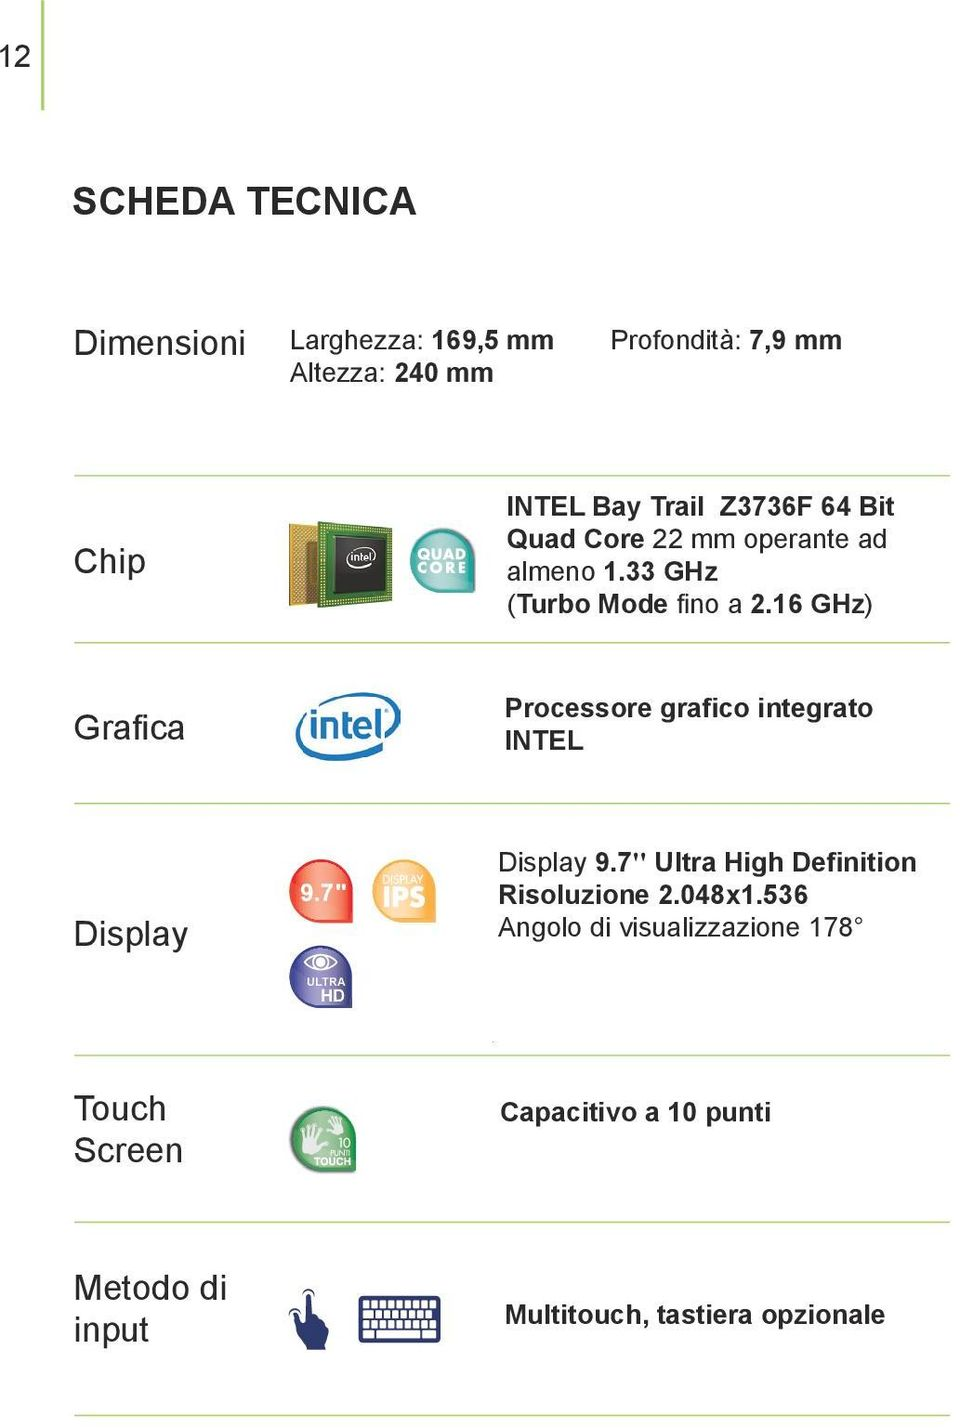 16 GHz) Grafica Processore grafico integrato INTEL Display Display 9.